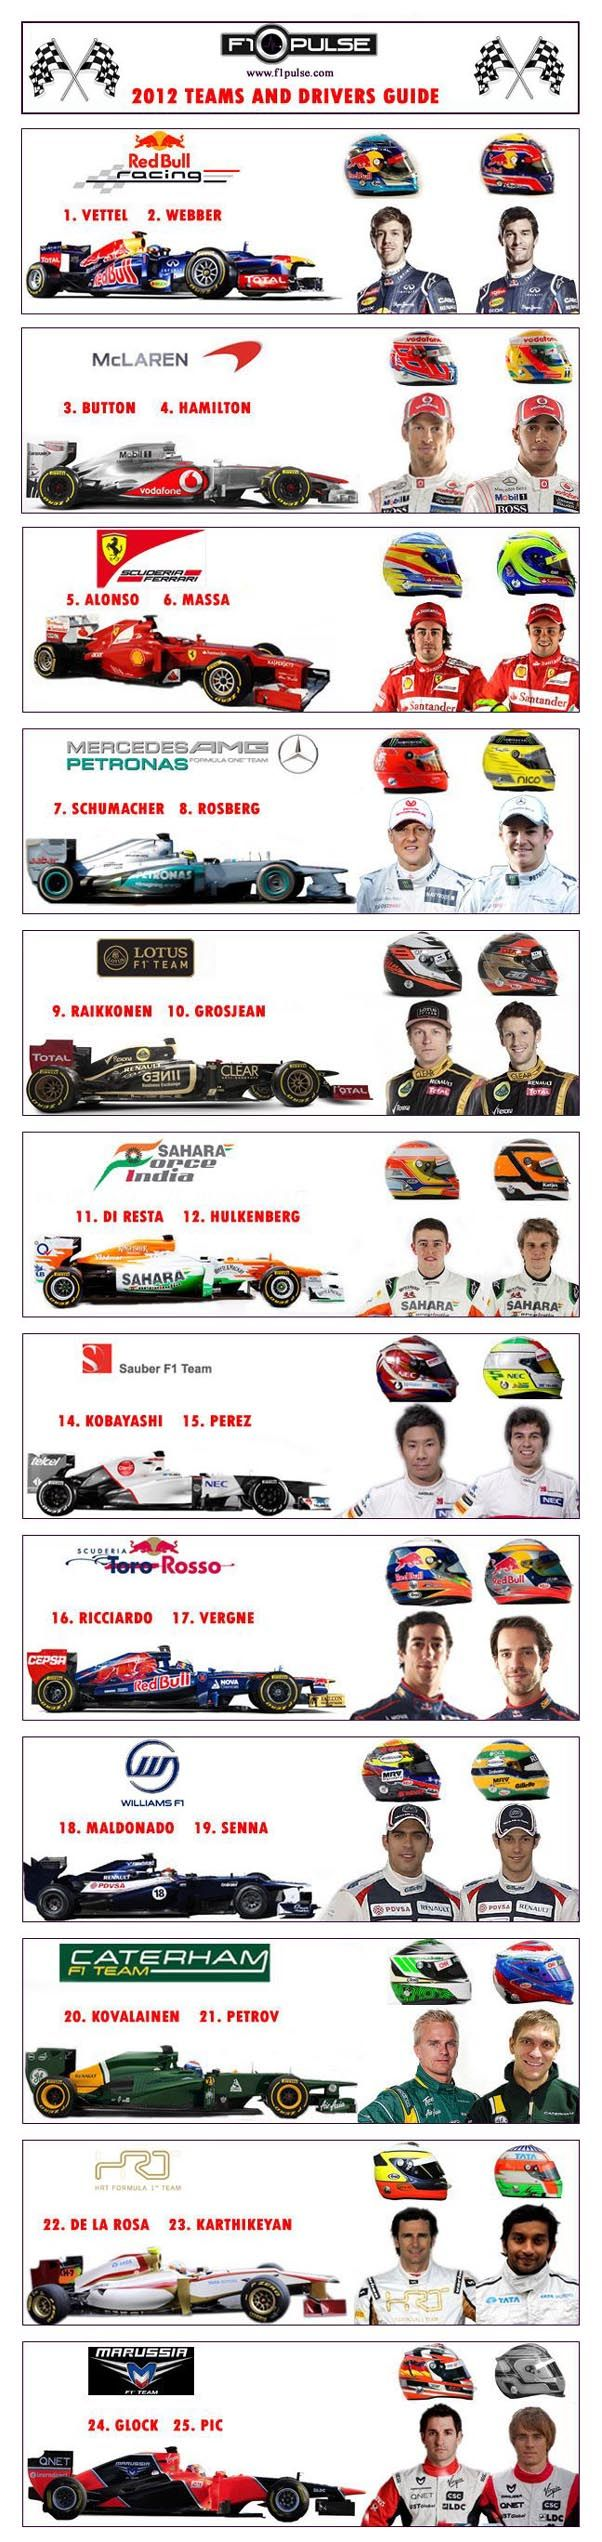 Round up of the 2012 Formula 1 Teams & Drivers - #SMDriver #F1